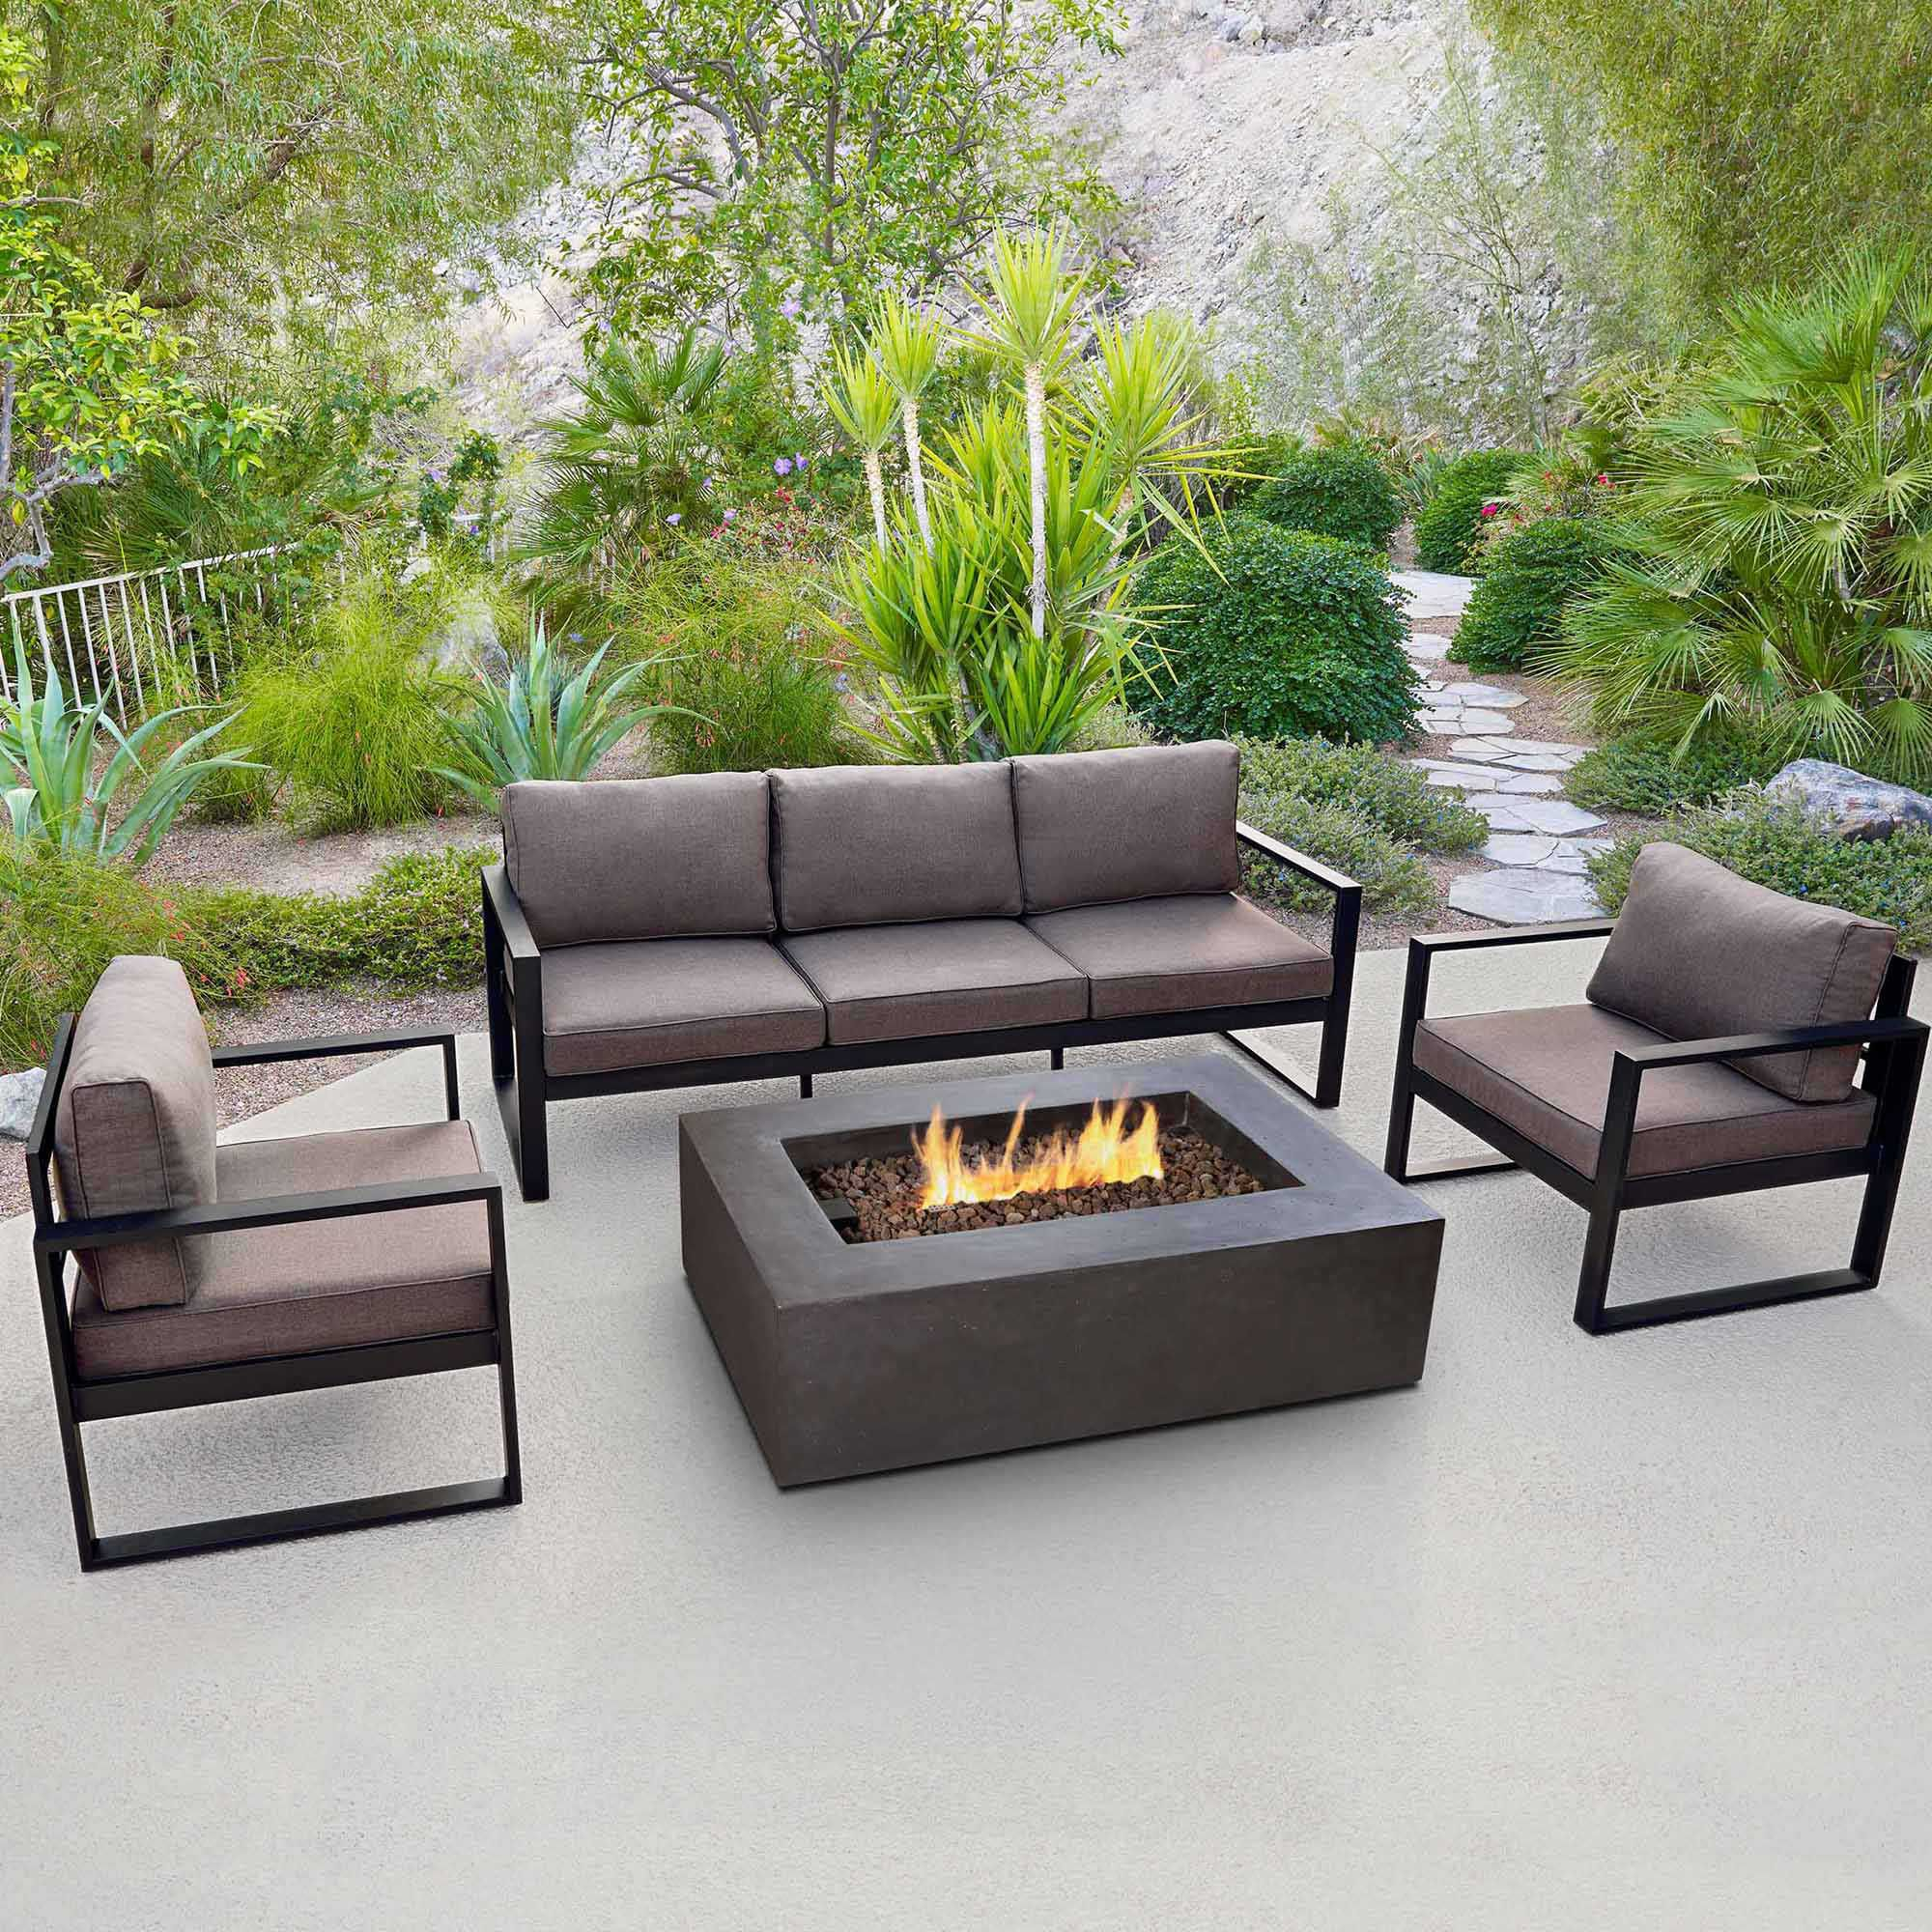 Real Flame® Baltic Outdoor Patio Furniture and Accessory Collection